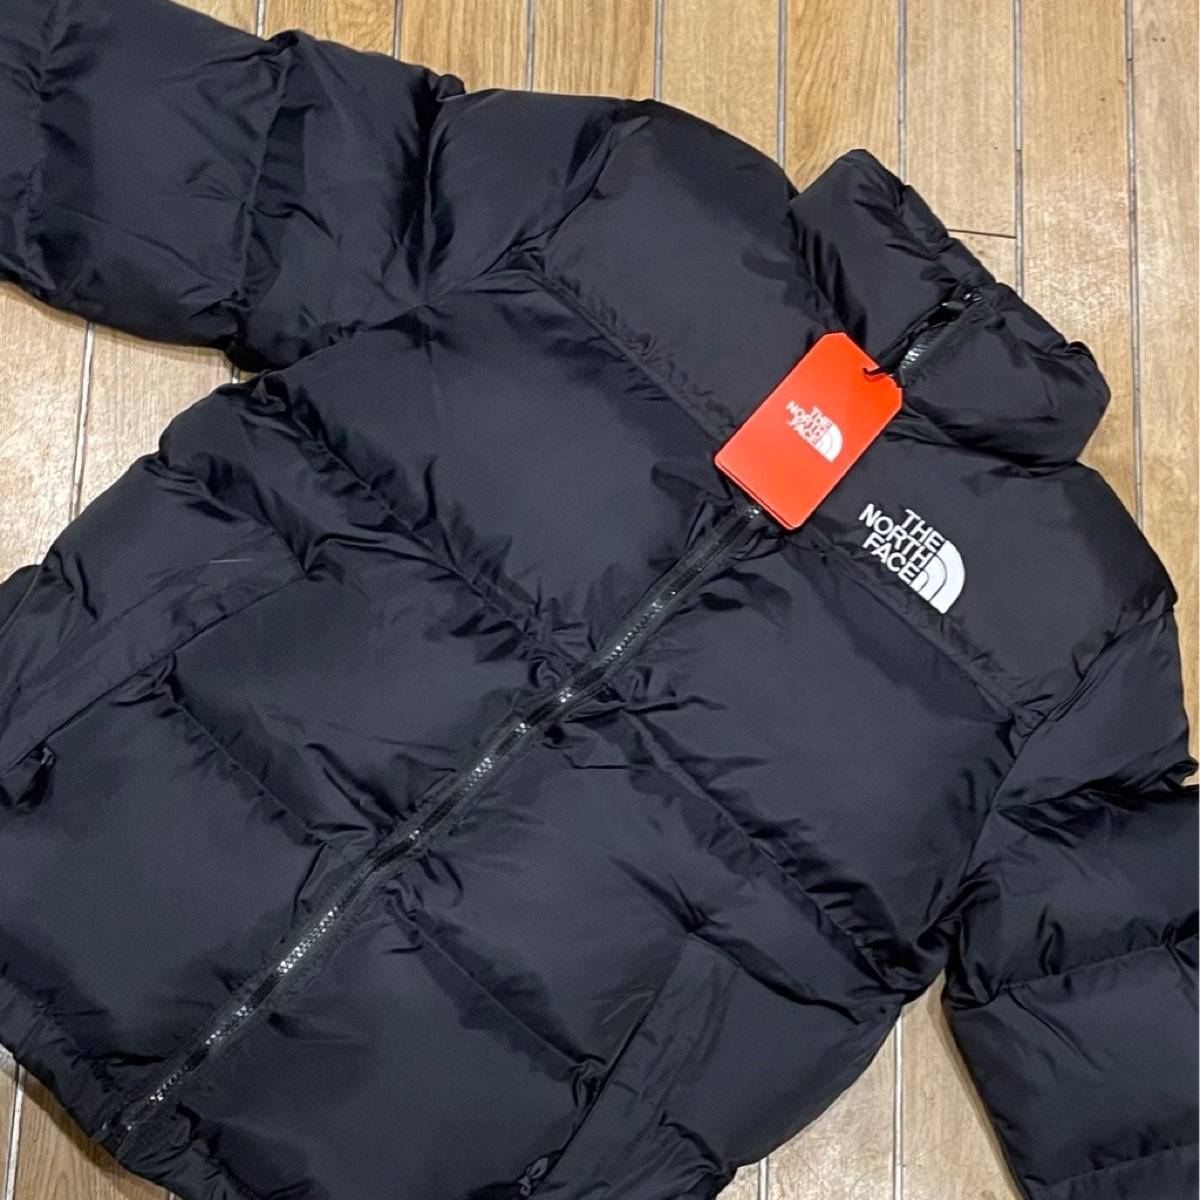 North face nuptse Down jacket 700